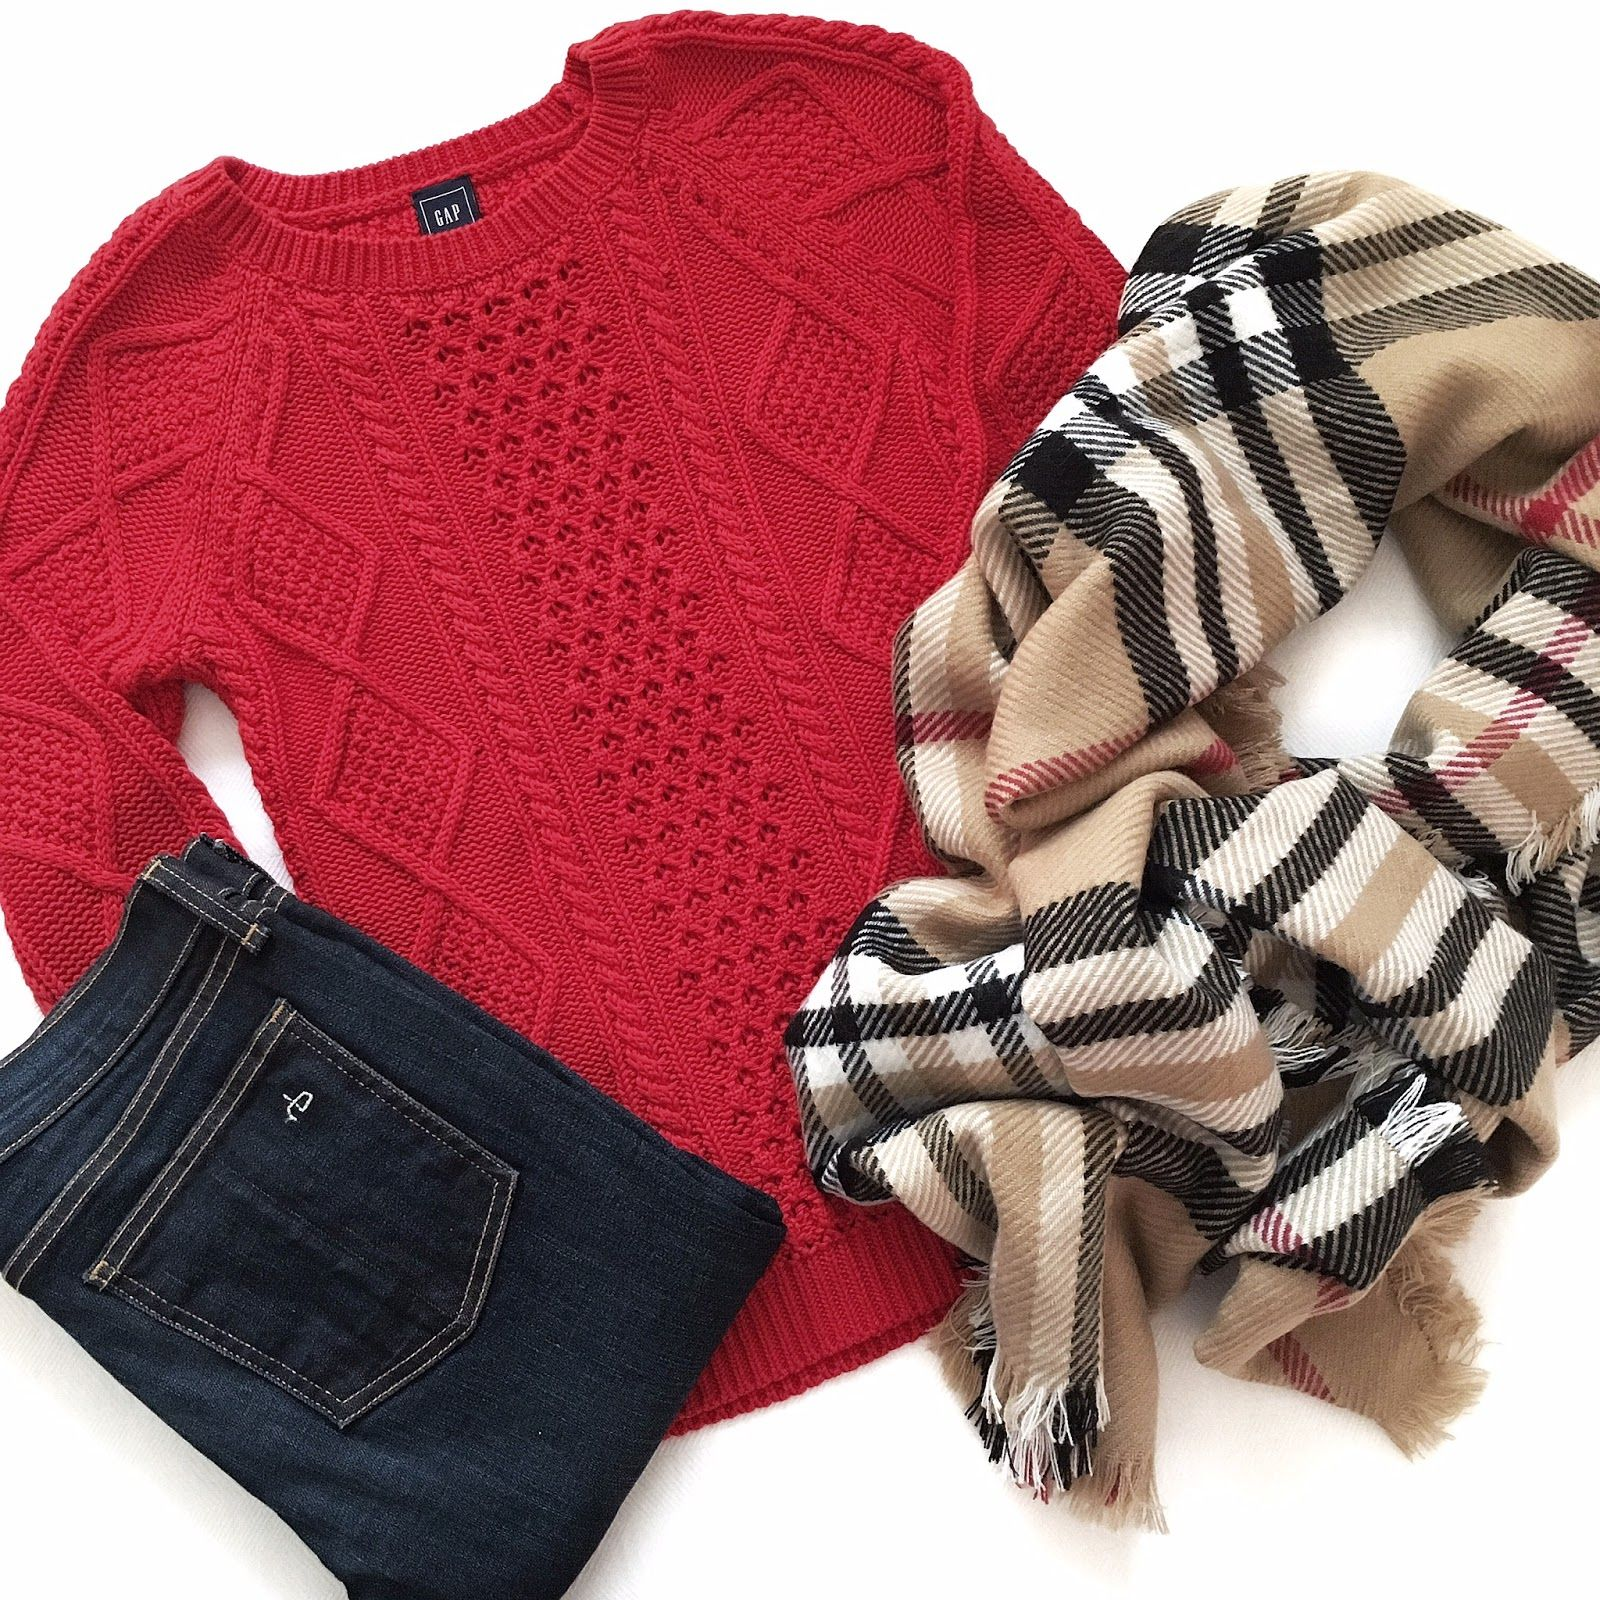 Red & Camel Outfit - festive red cable knit sweater, camel plaid blanket scarf and skinny jeans #sweateroutfits